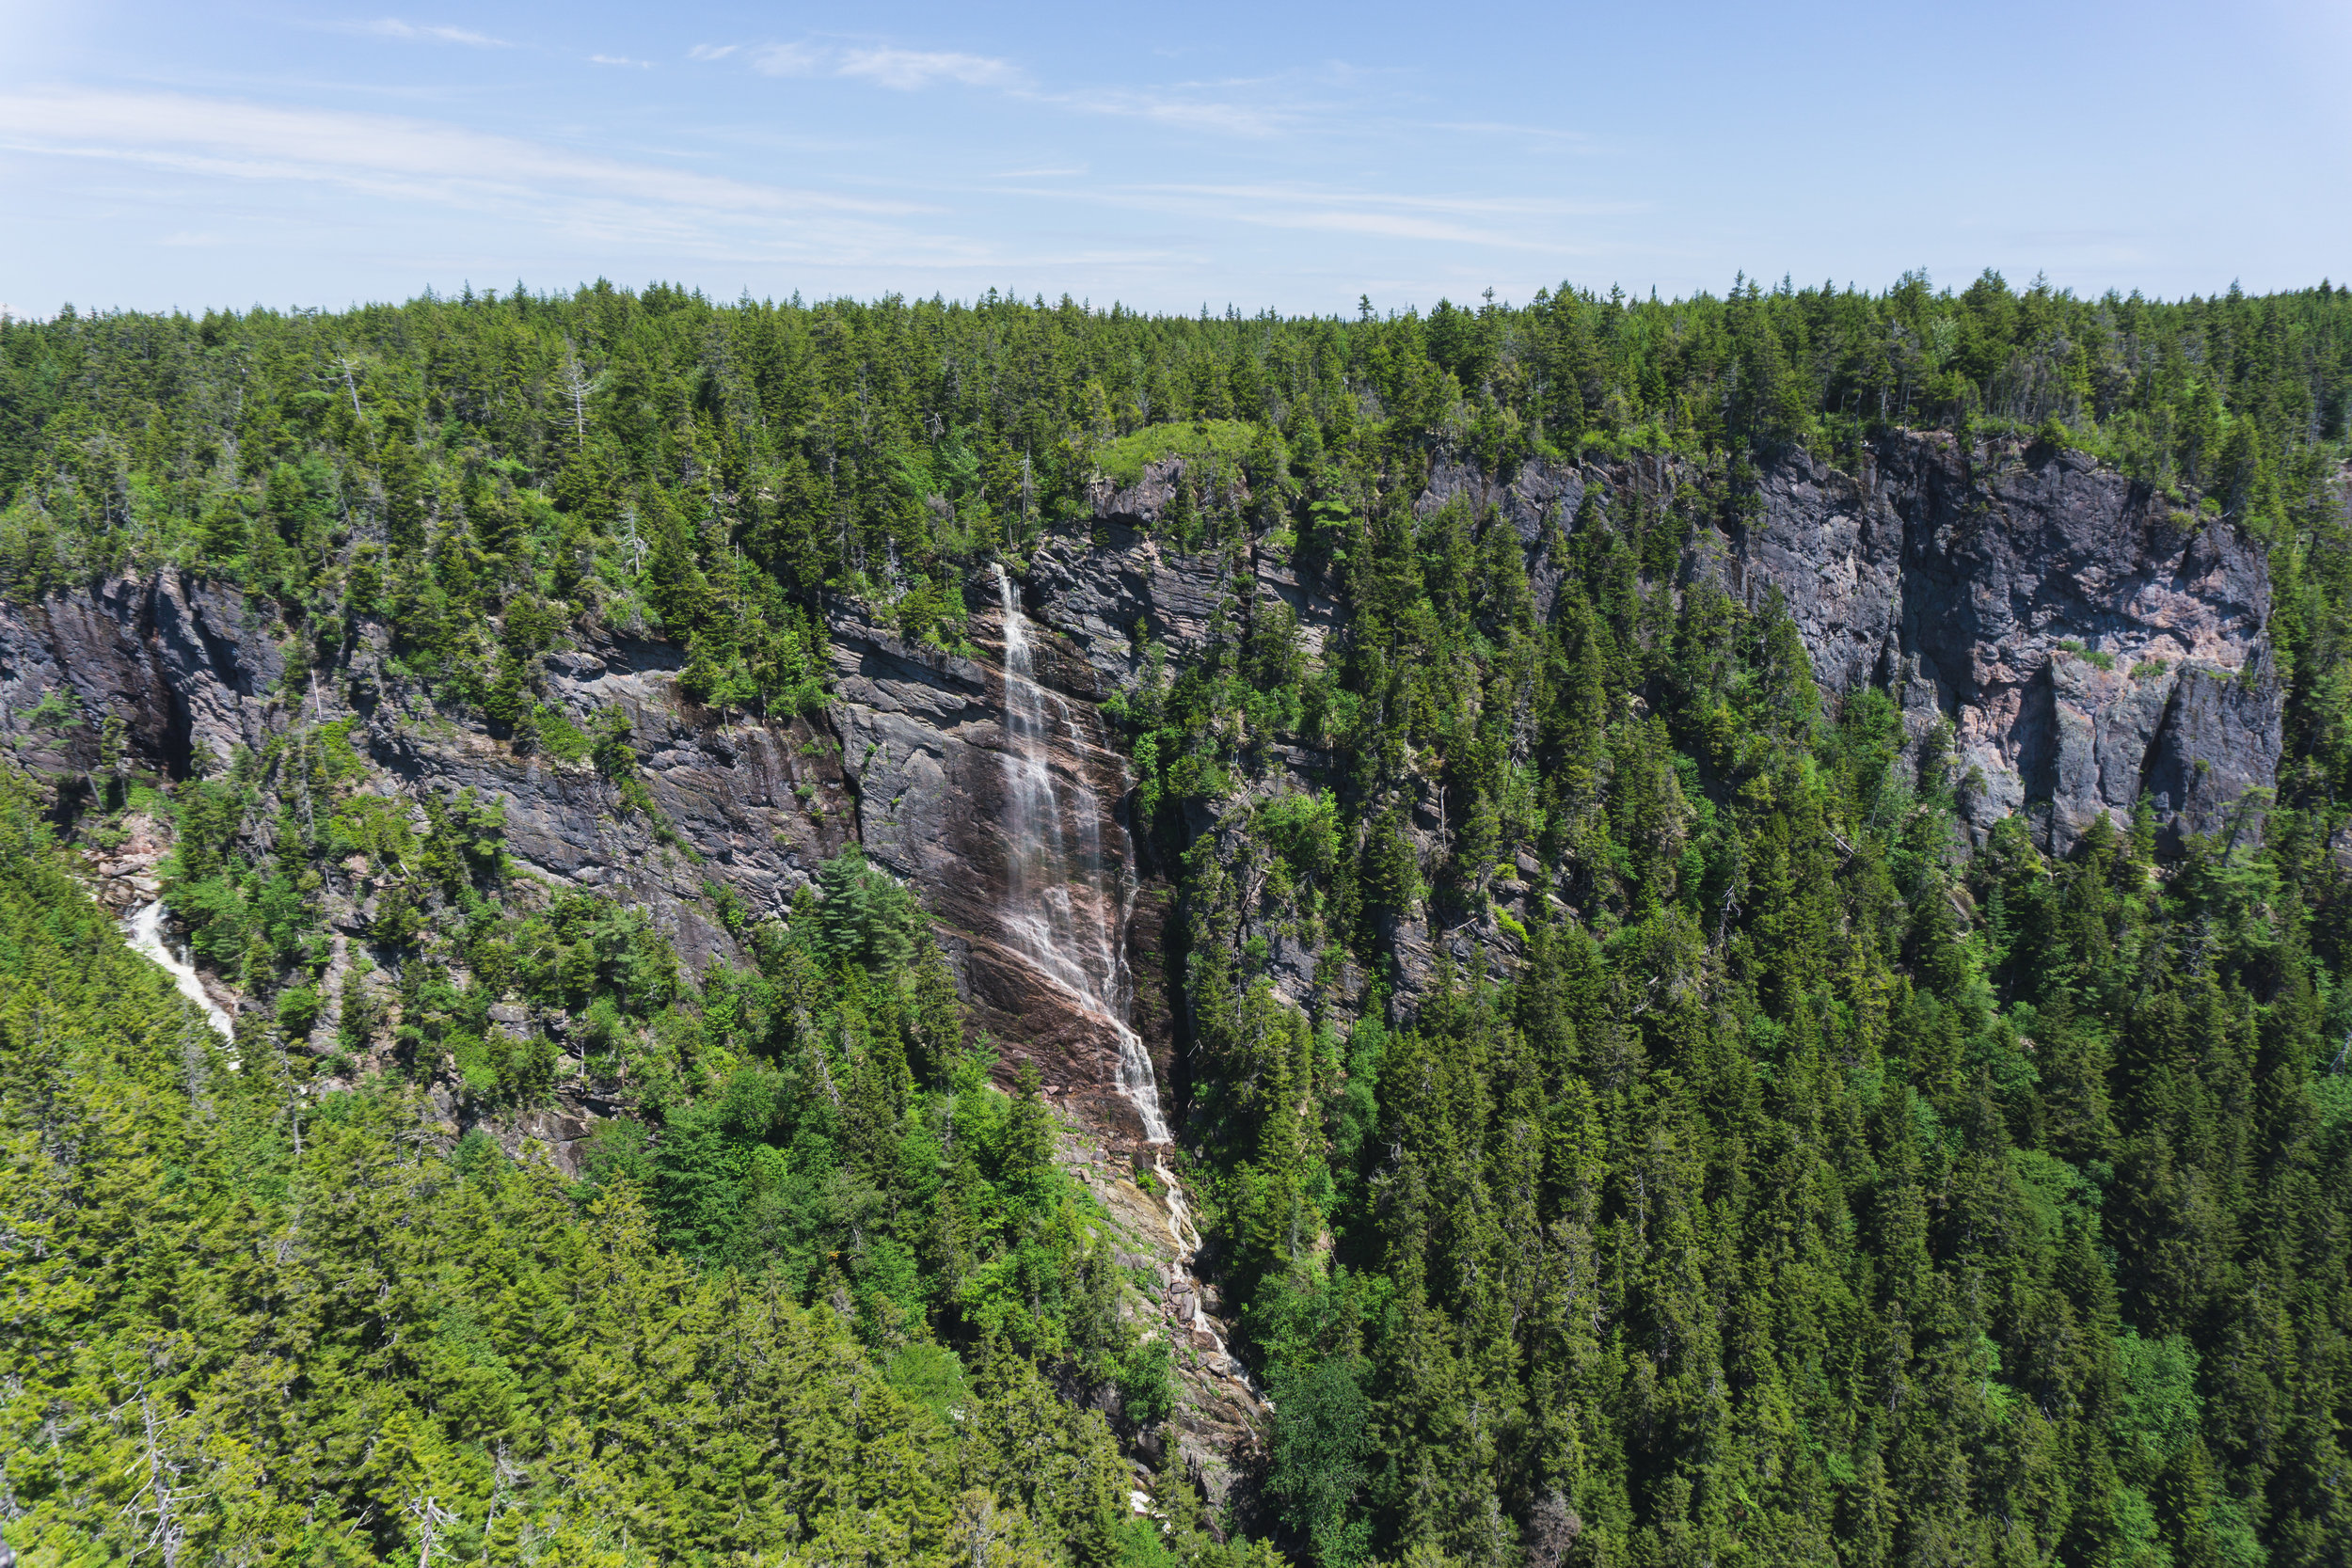 (This is the second highest waterfall in NB.)